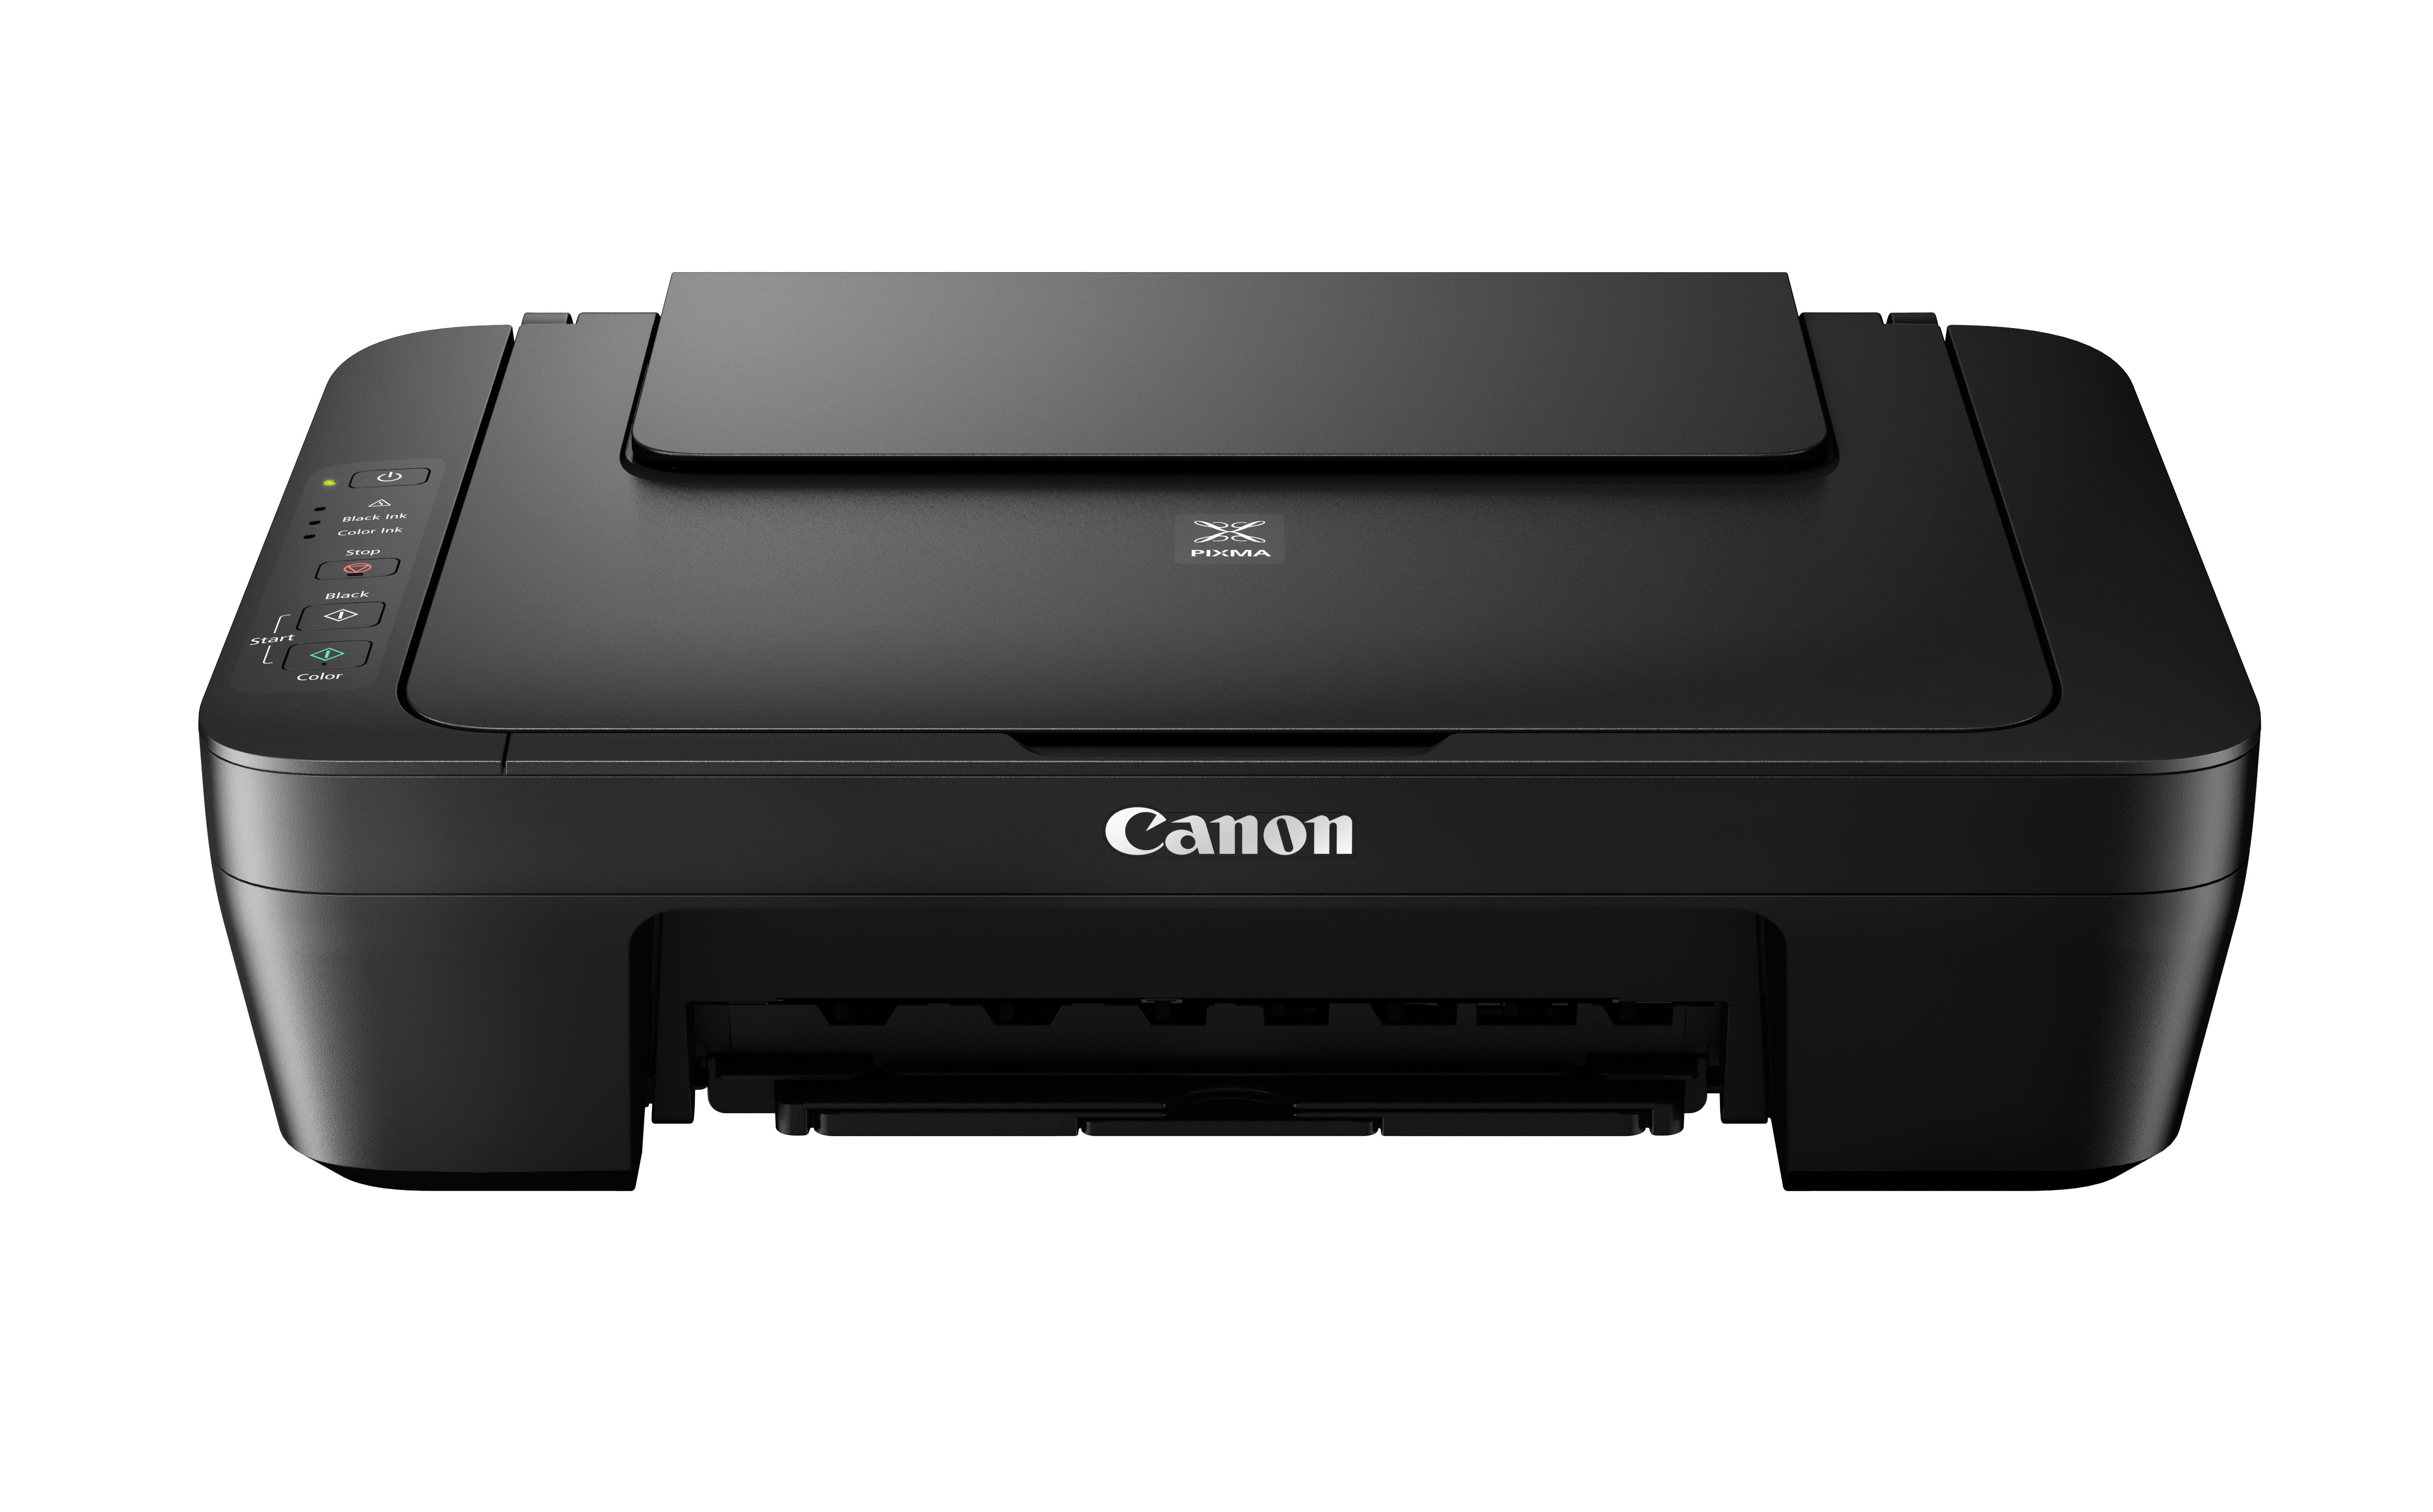 PIXMA - PIXMA MG2570S - Canon India